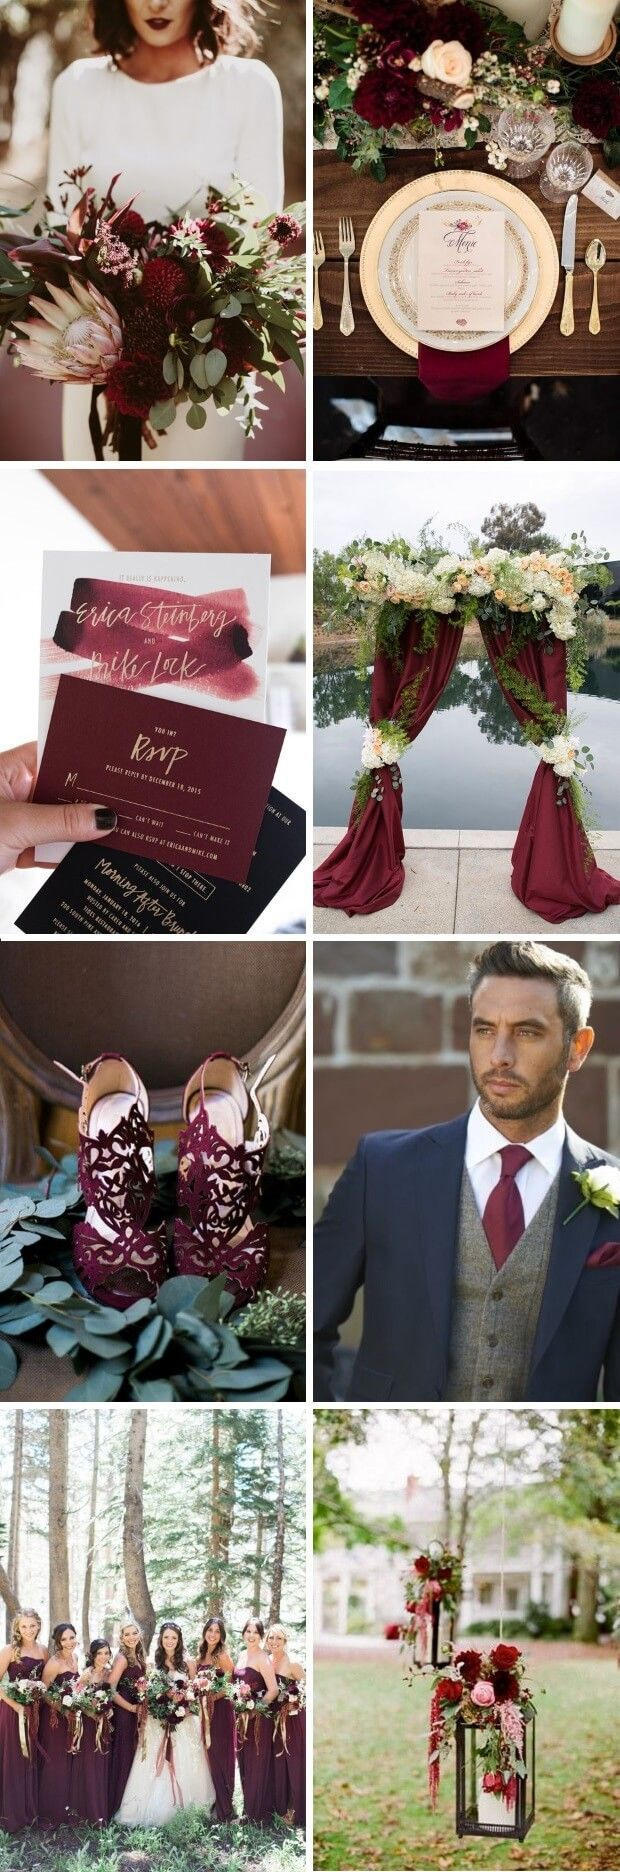 A Magical Maroon, Gold & Navy Palette for an Elegant Autumn or Winter Wedding. #maroon #marsala #burgundy #greenery #gothic